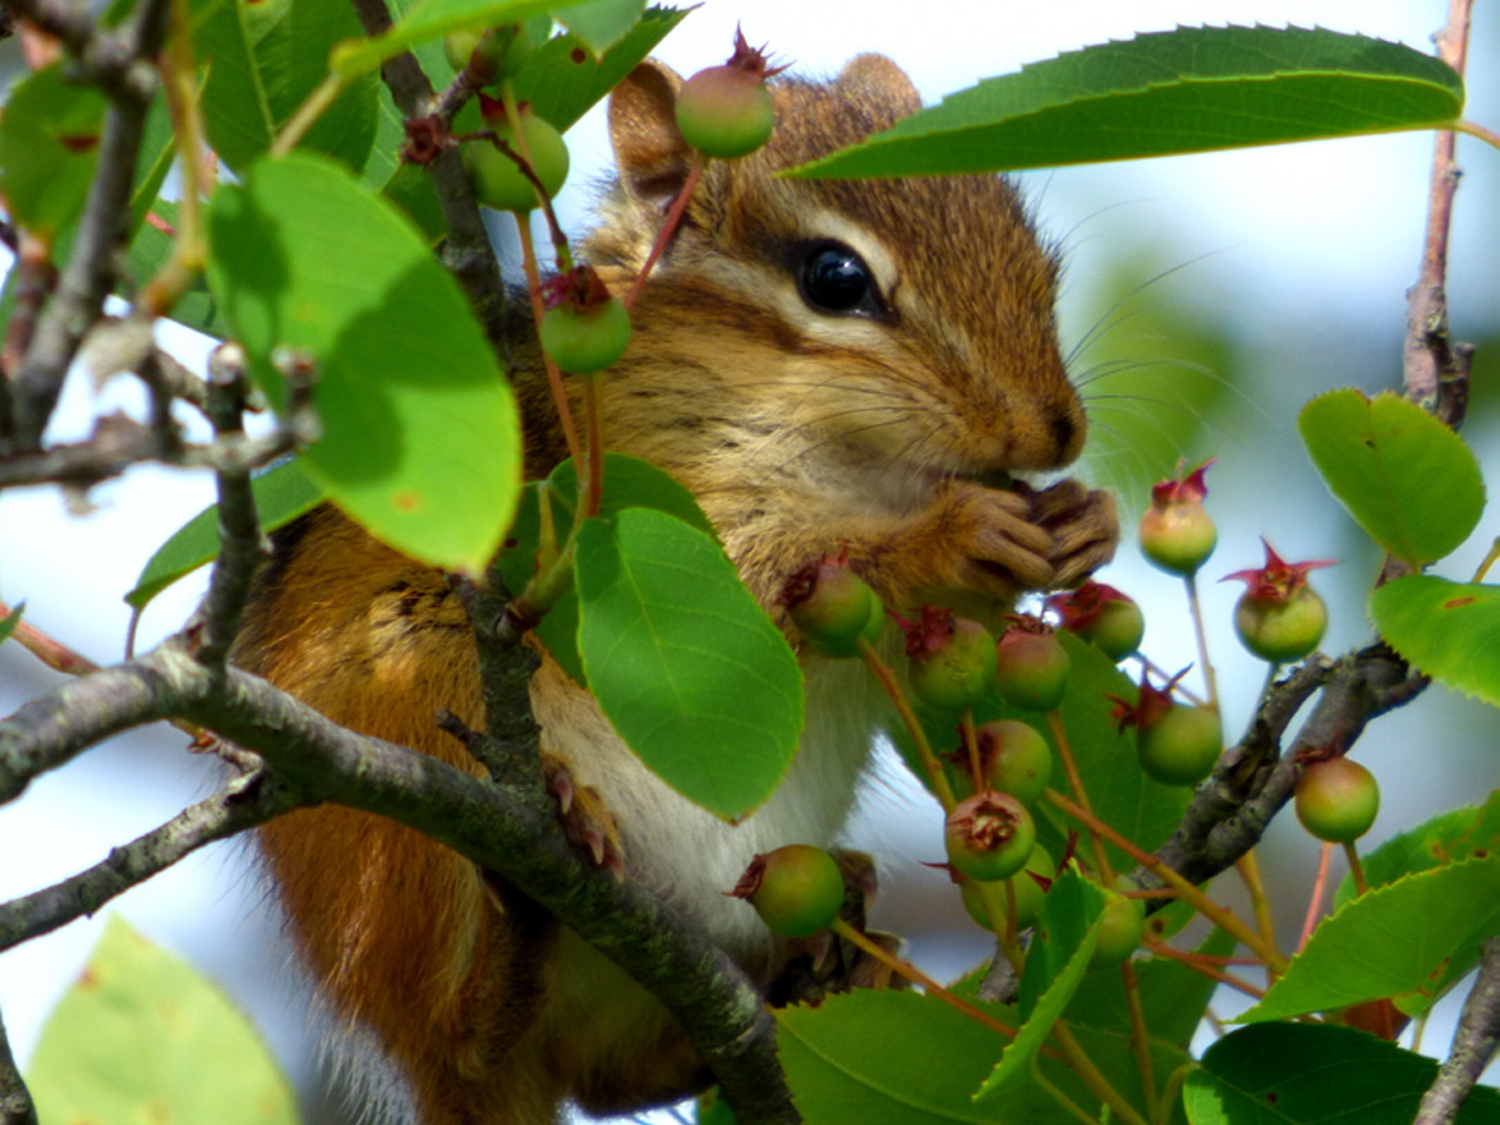 Found this chipmunk competing with birds for some early berries at Timber Point in Biddeford. Thanks, Brad Woodward 2 Ryefield Drive #18 Old Orchard Beach